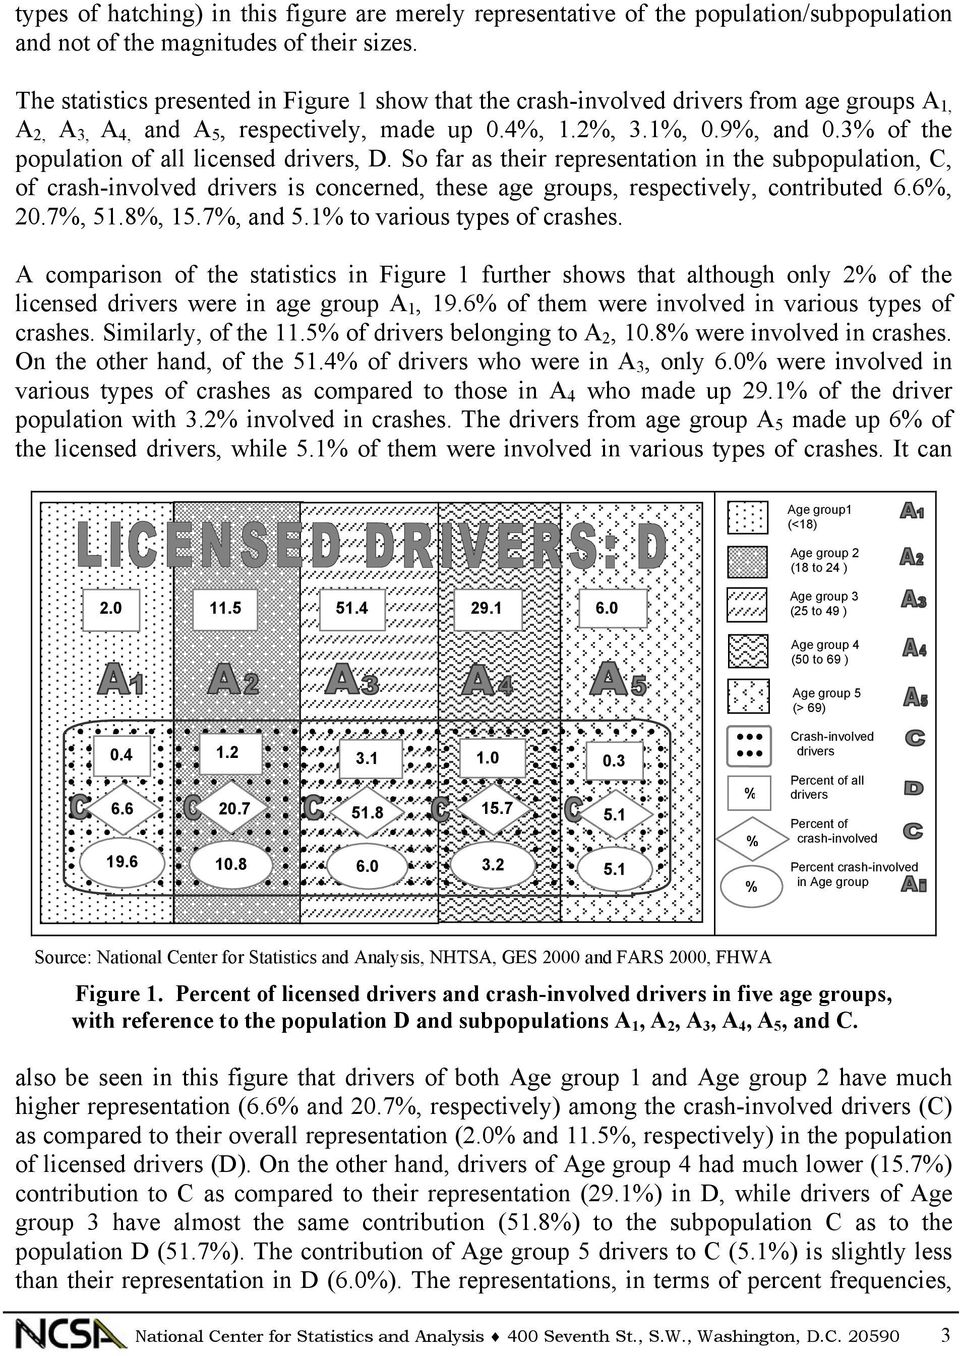 3% of the population of all licensed drivers, D. So far as their representation in the subpopulation, C, of crash-involved drivers is concerned, these age groups, respectively, contributed 6.6%, 20.